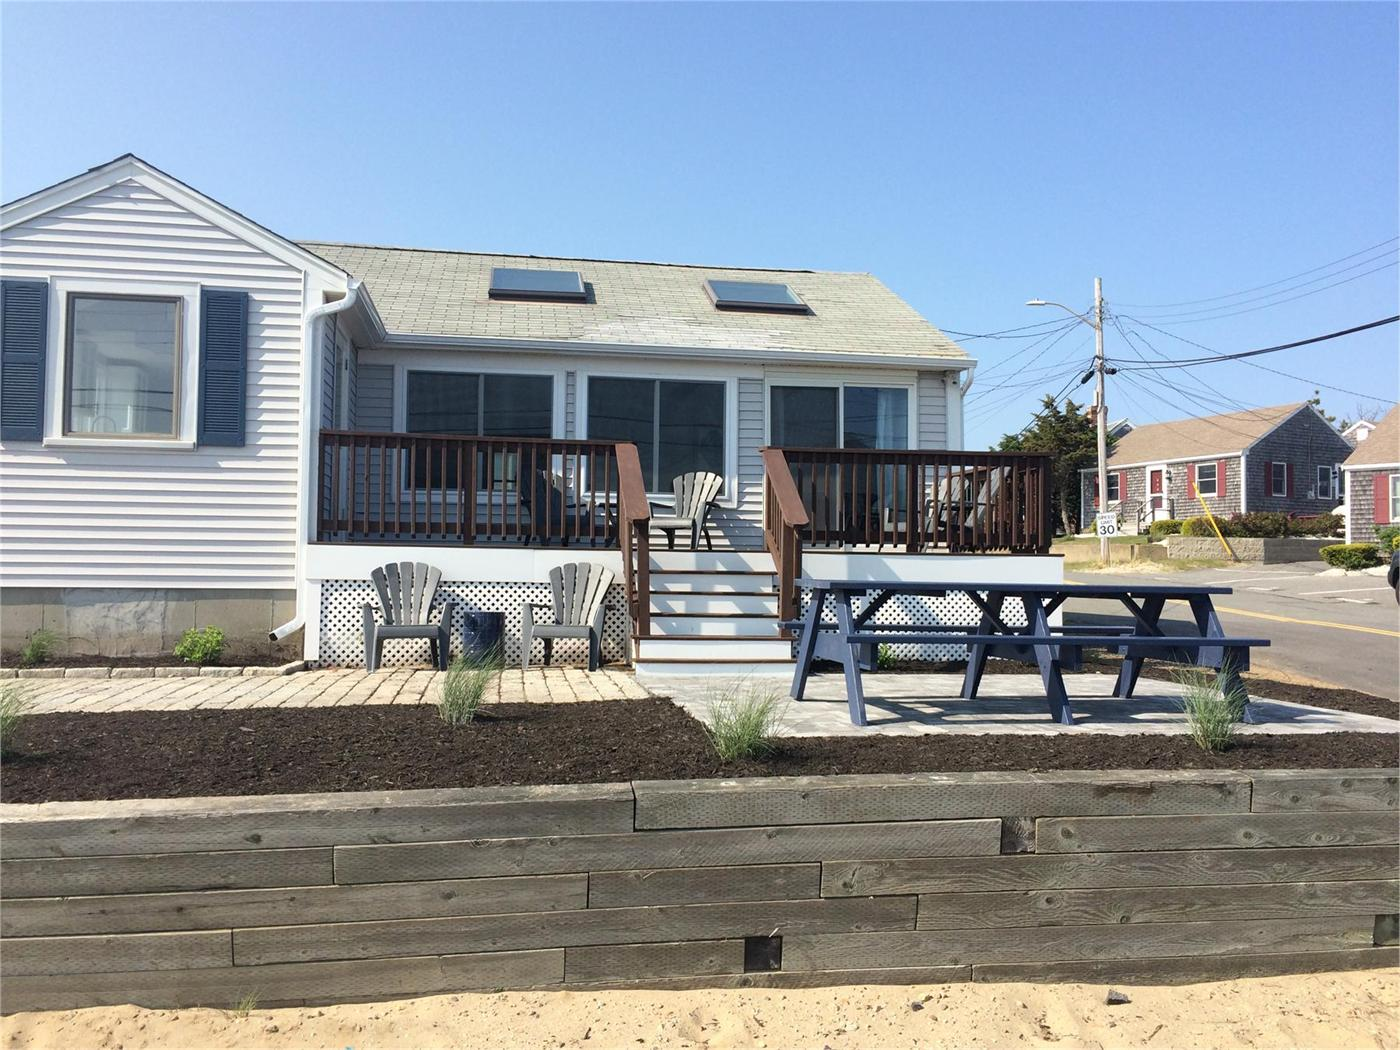 dennis vacation rental home in cape cod ma 02639 directly across